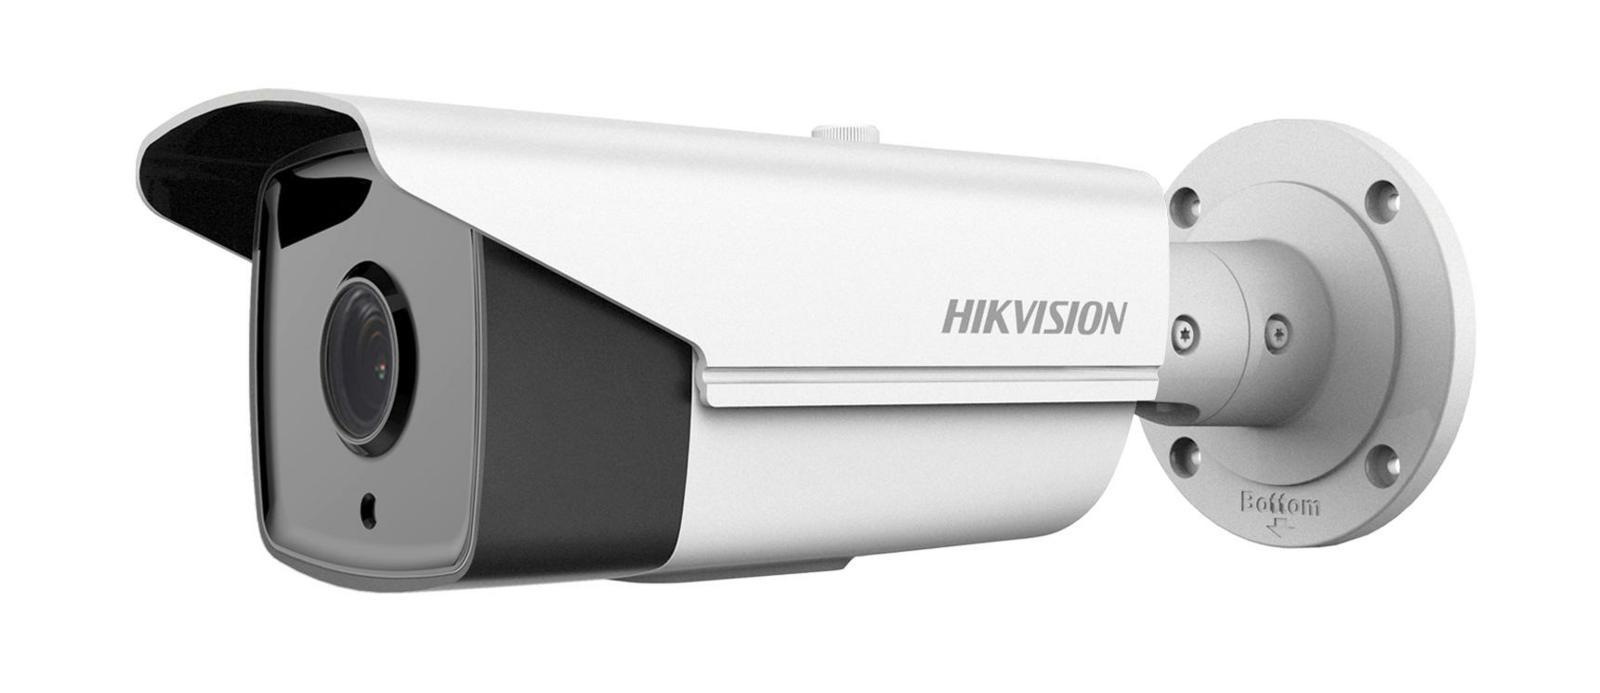 SICE Distributore Ufficiale  TELECAMERE IP TLC Bullet IP camera 5Mpx 4 mm 1/3 CMOS IR 50m WDR | DS-2CD2T52-I5 4M